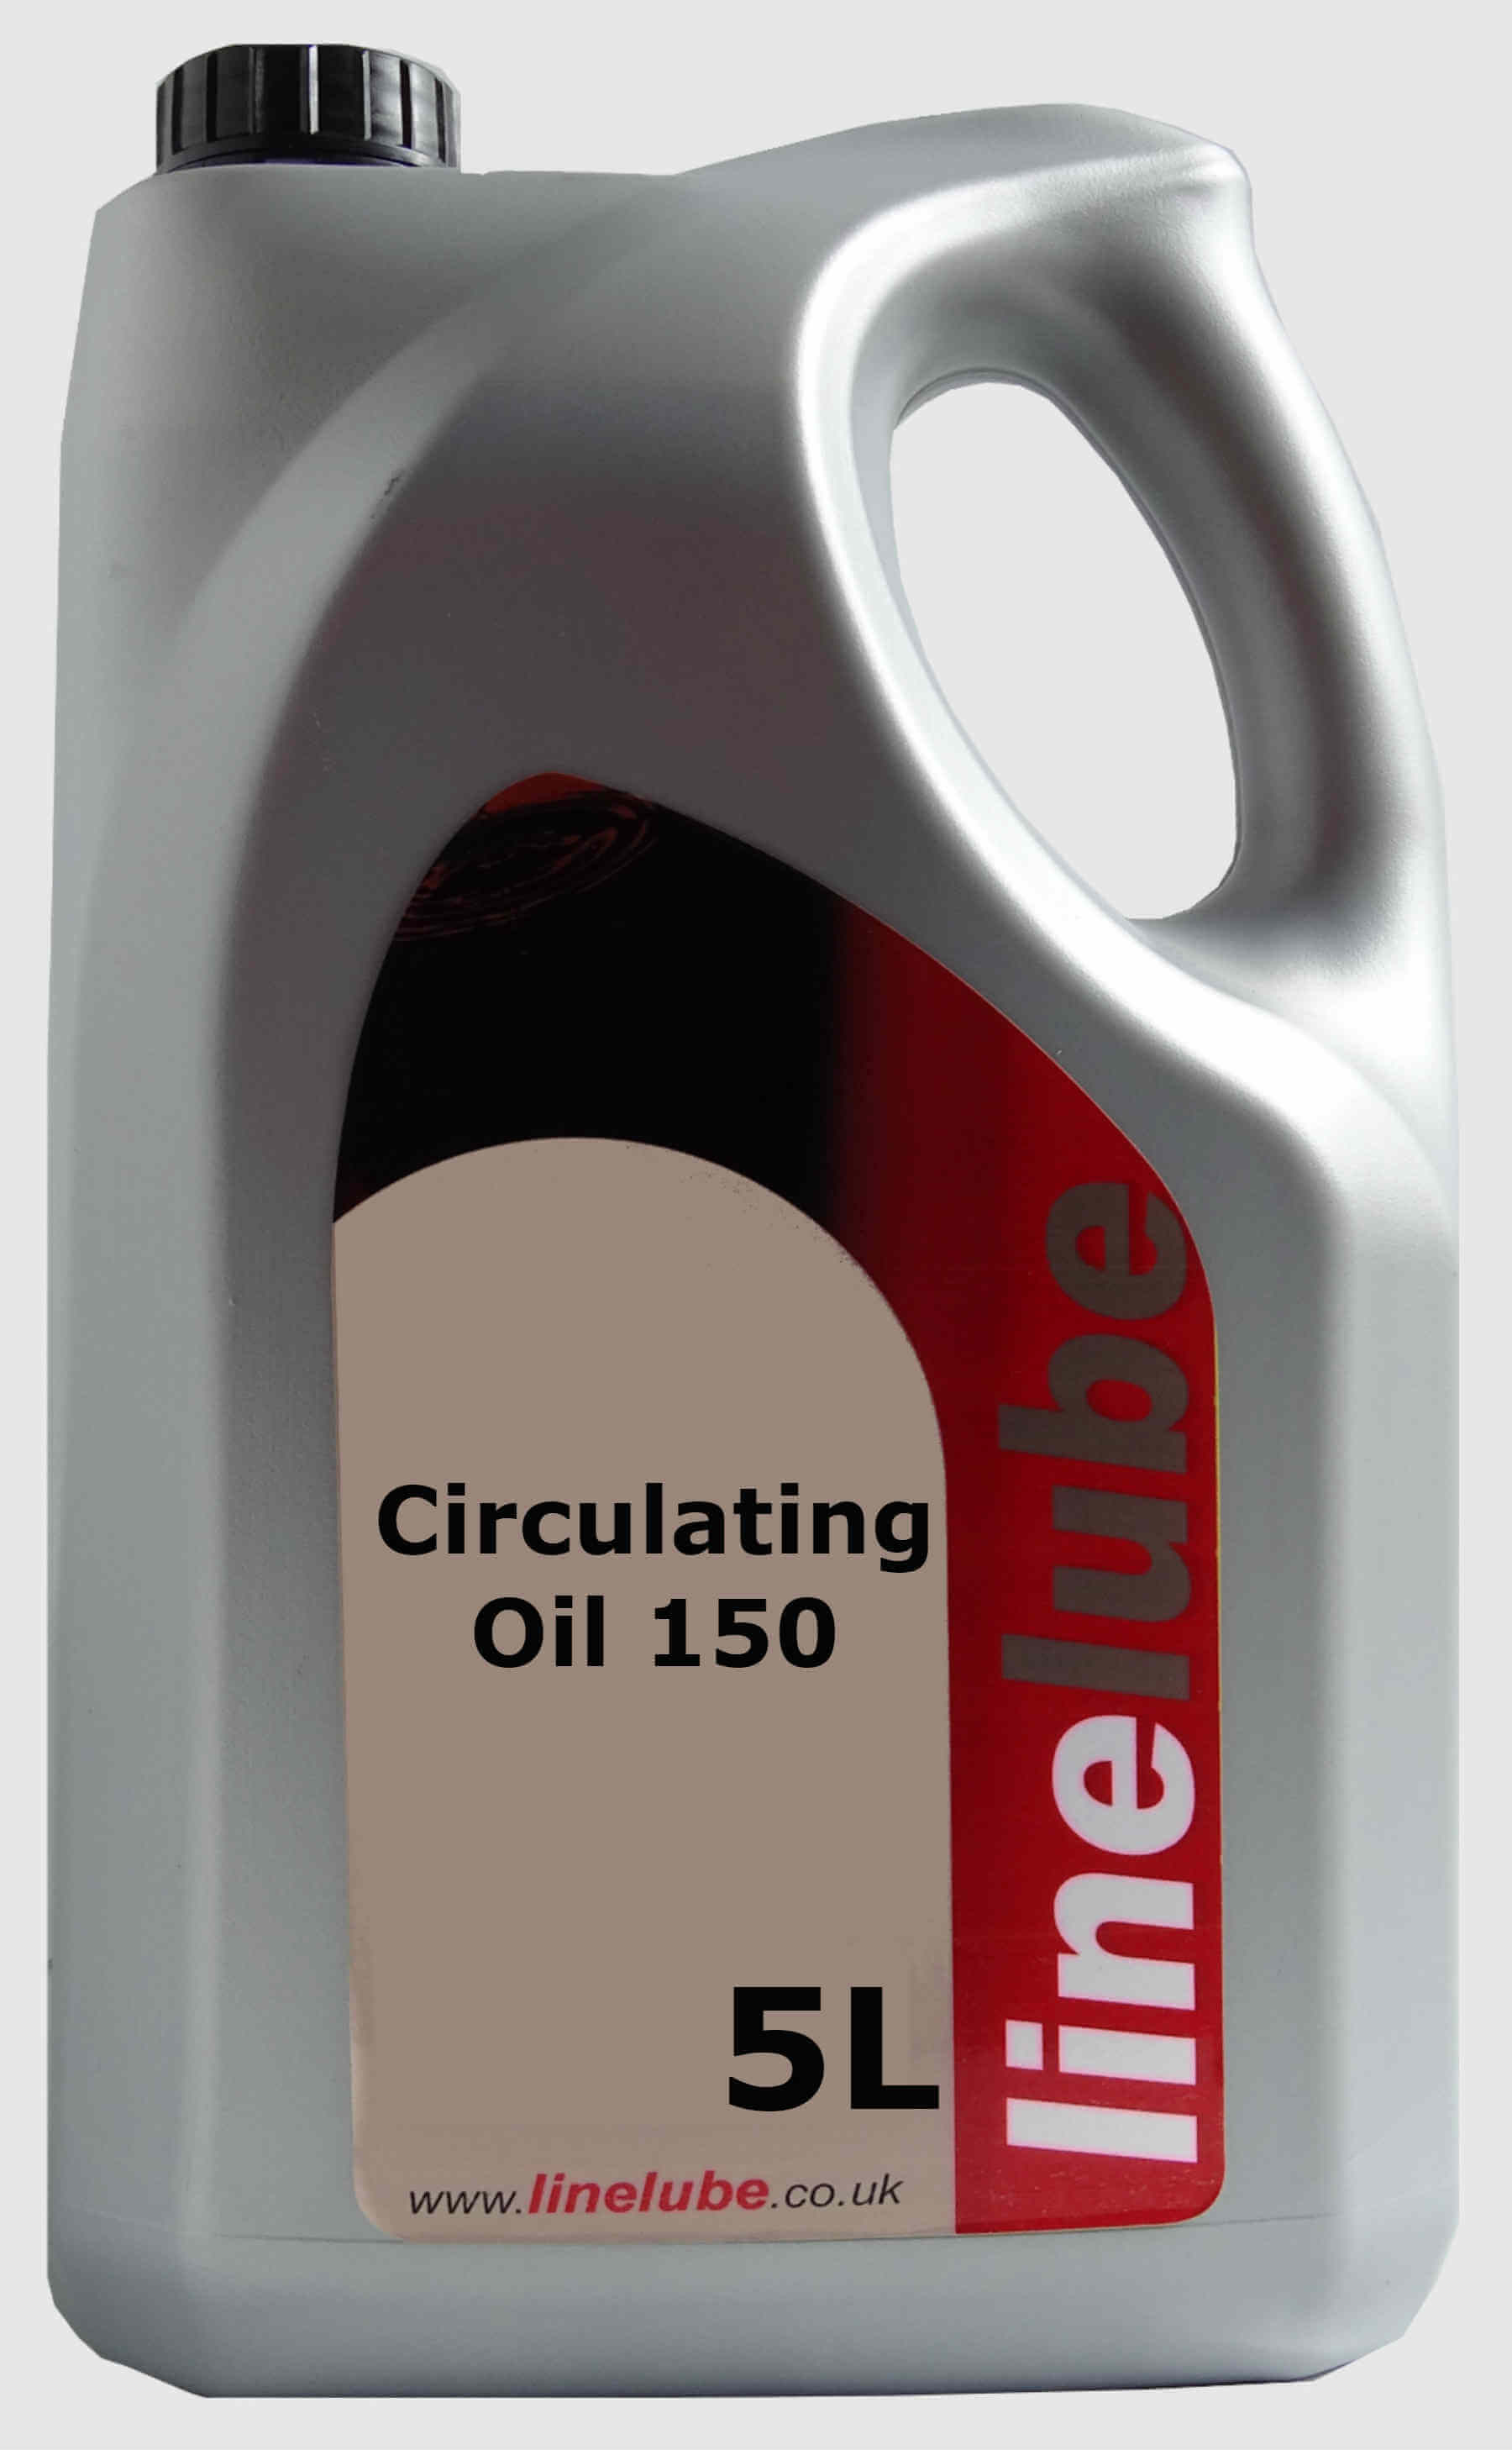 linelube Circulating Oil 150